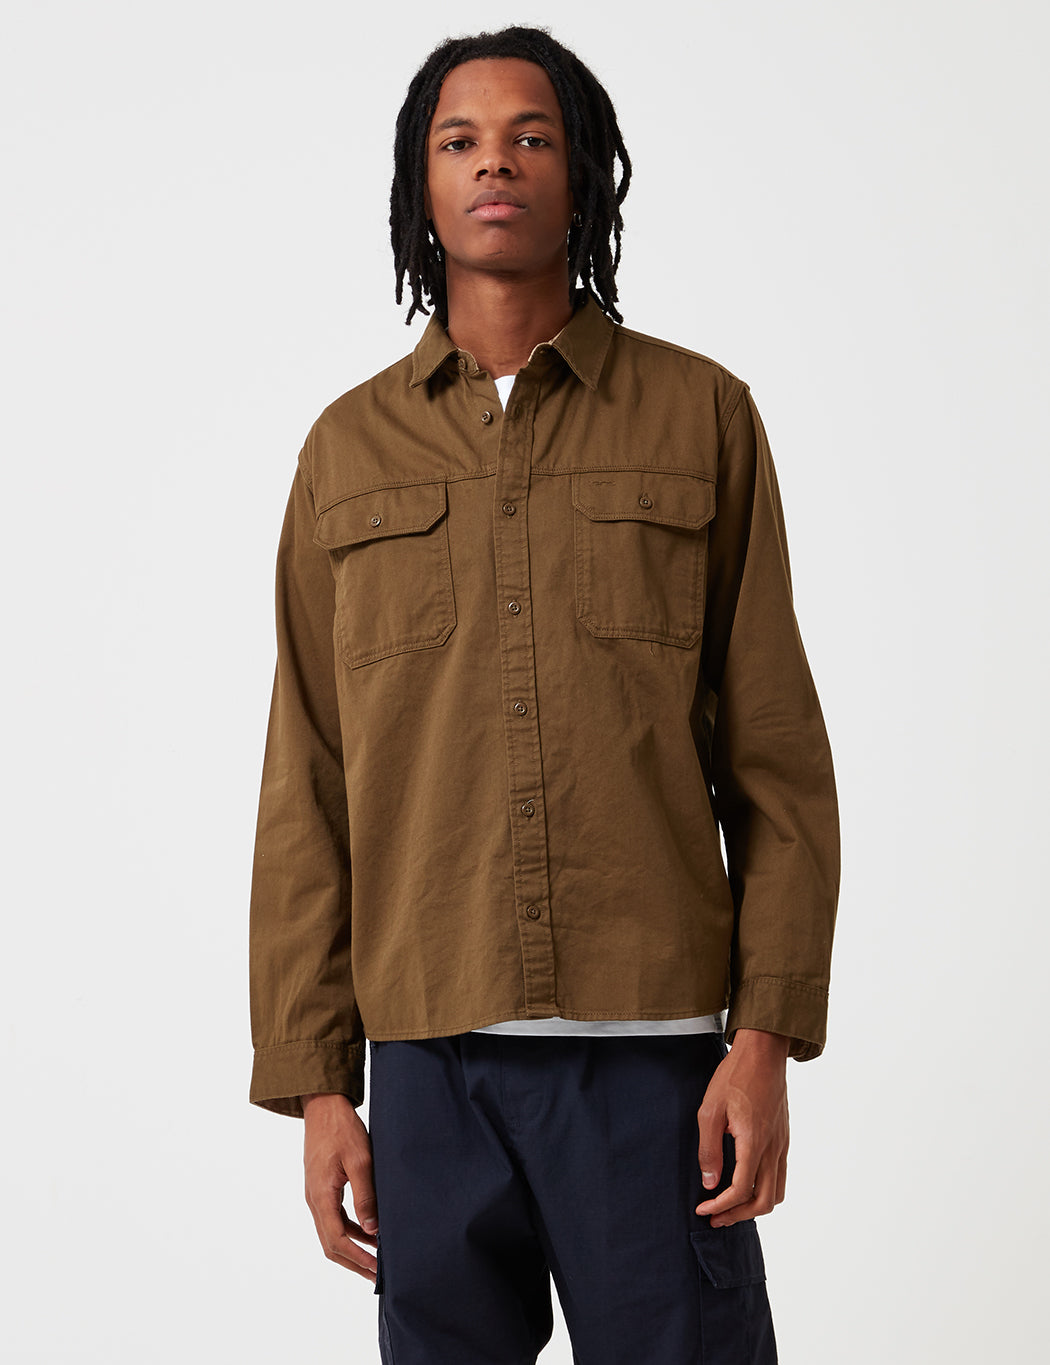 f68a849f5efb7a Patagonia Long Sleeve Four Canyons Twill Shirt - Green   URBAN EXCESS.